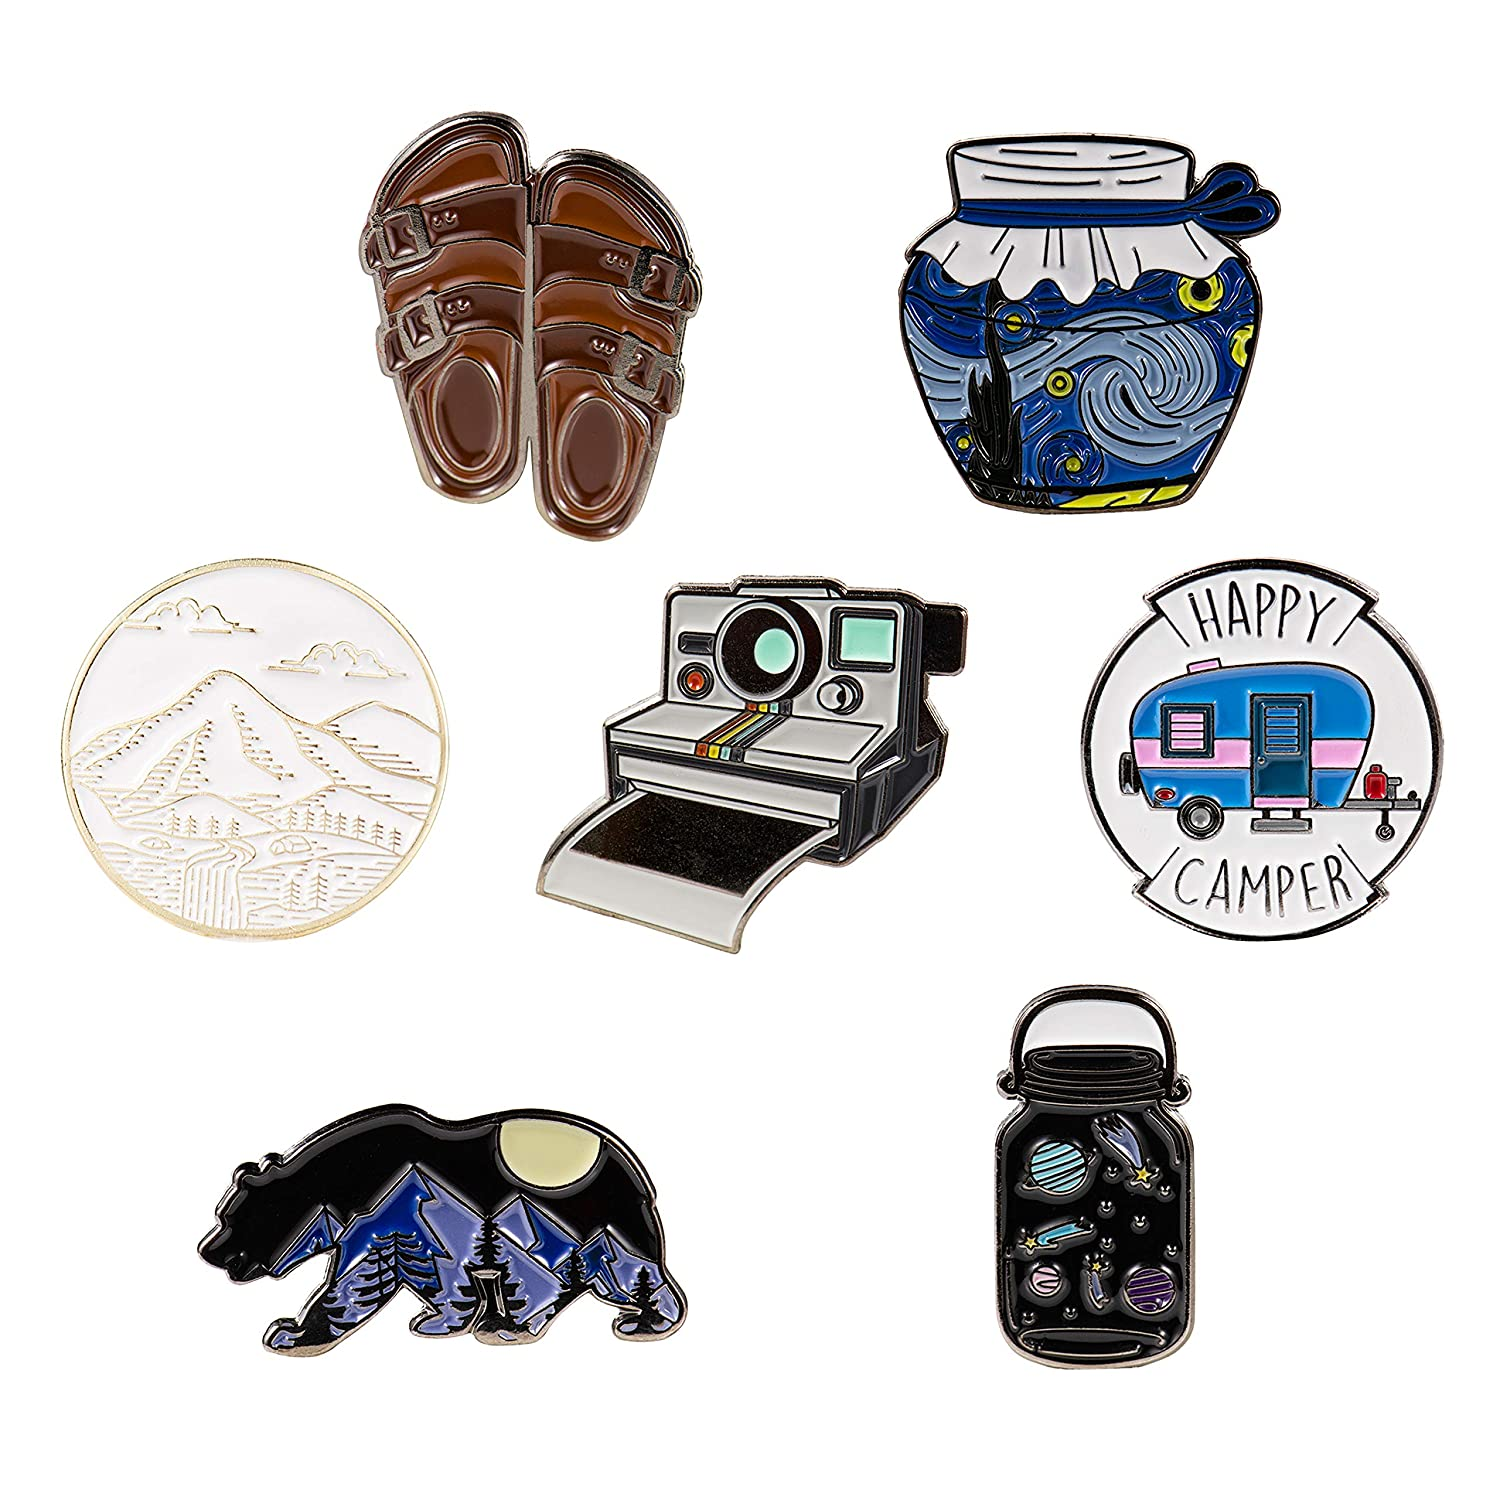 RipDesigns - 7 Outdoors Enamel Pins For Backpacks (Set 2) 91qQXH0hVBL